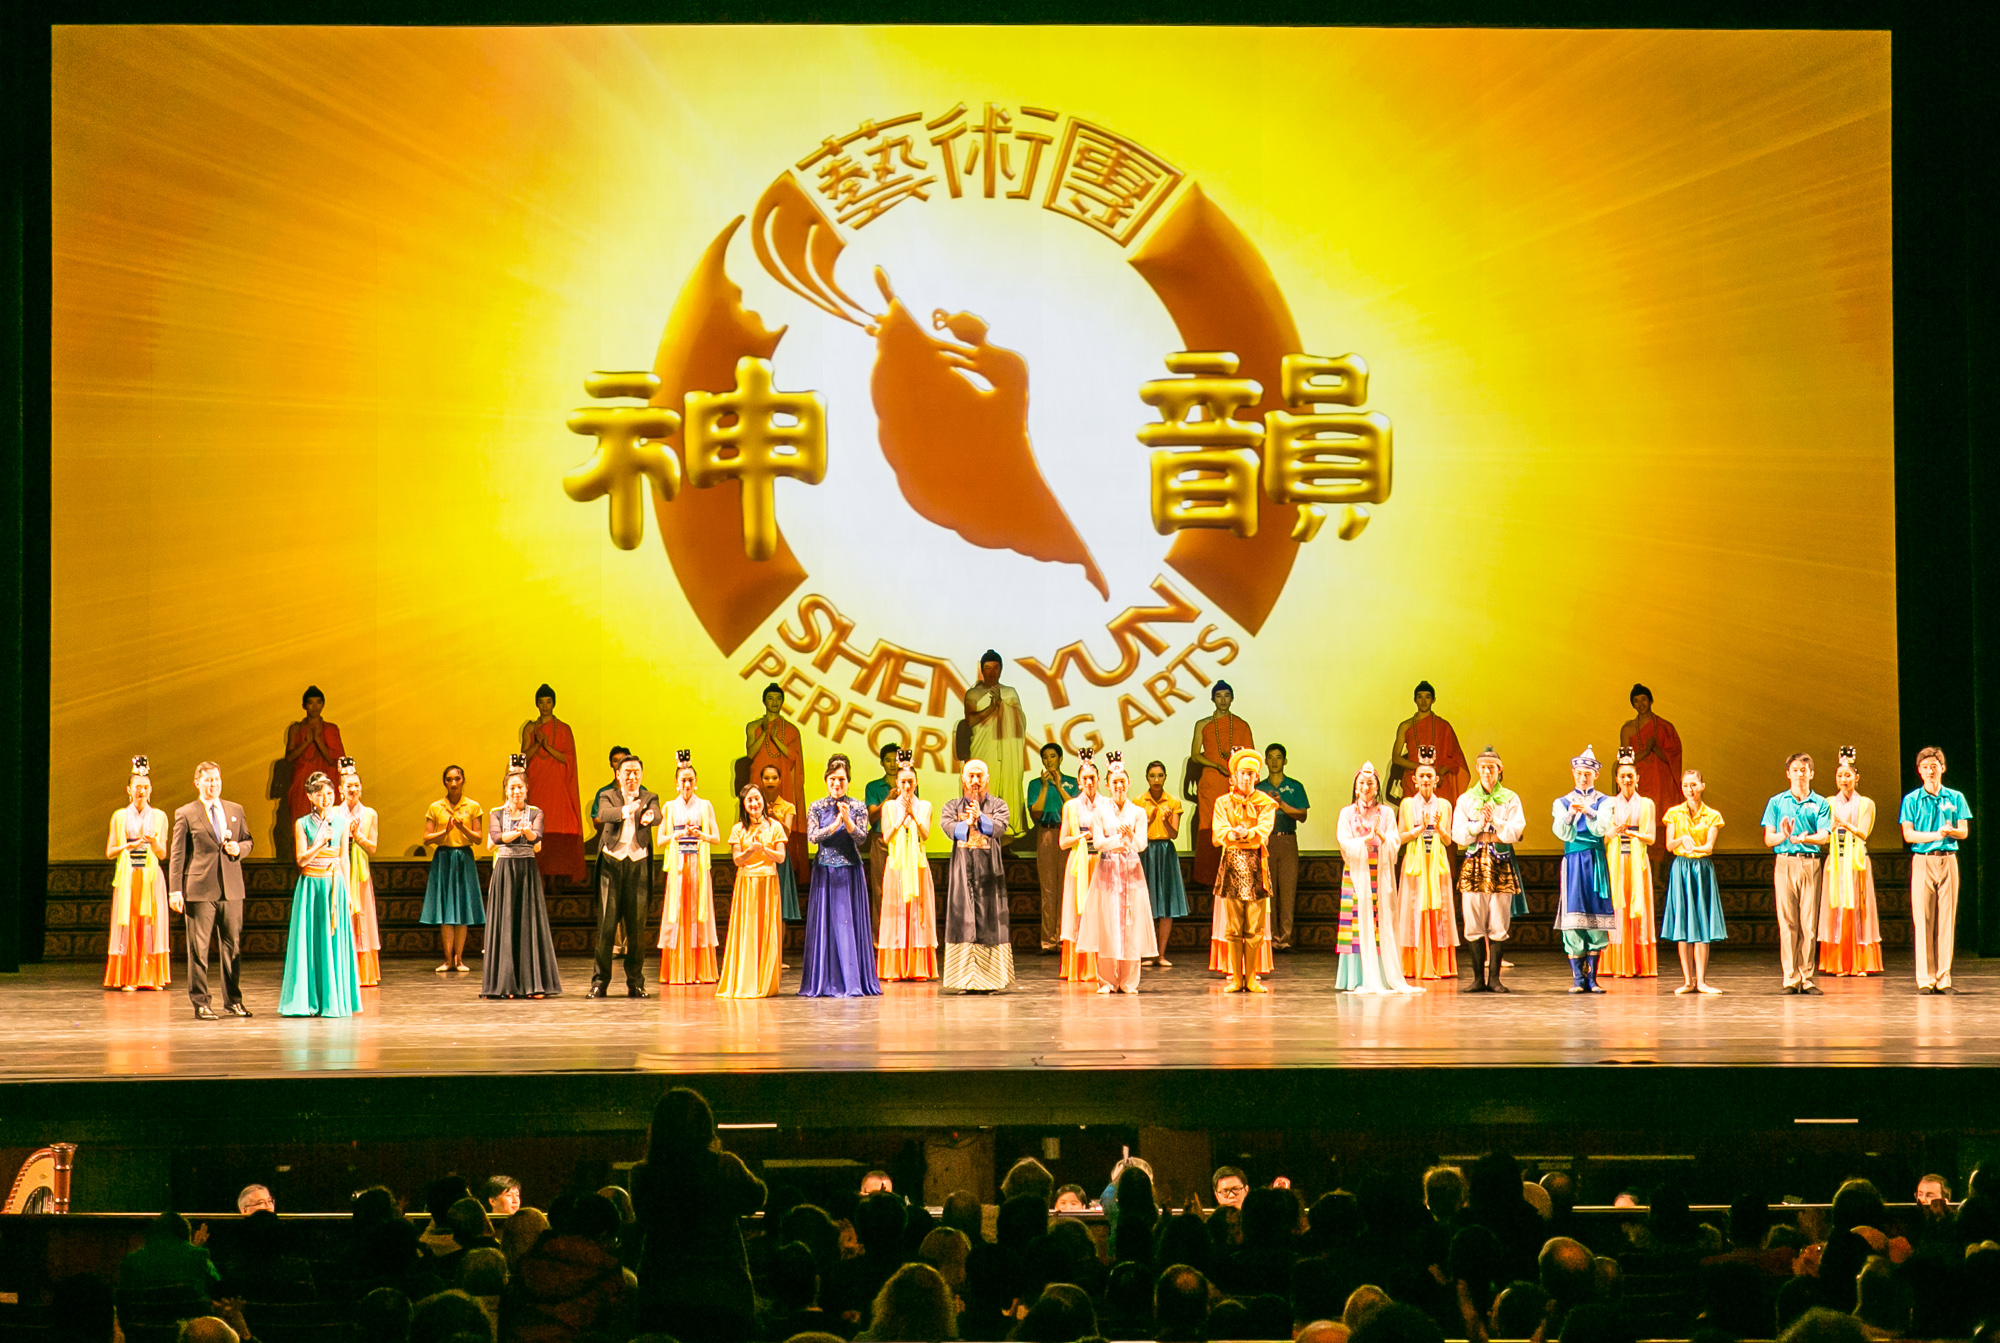 Chinese Internet Trolls Attack Shen Yun in Bid to Influence Public Opinion